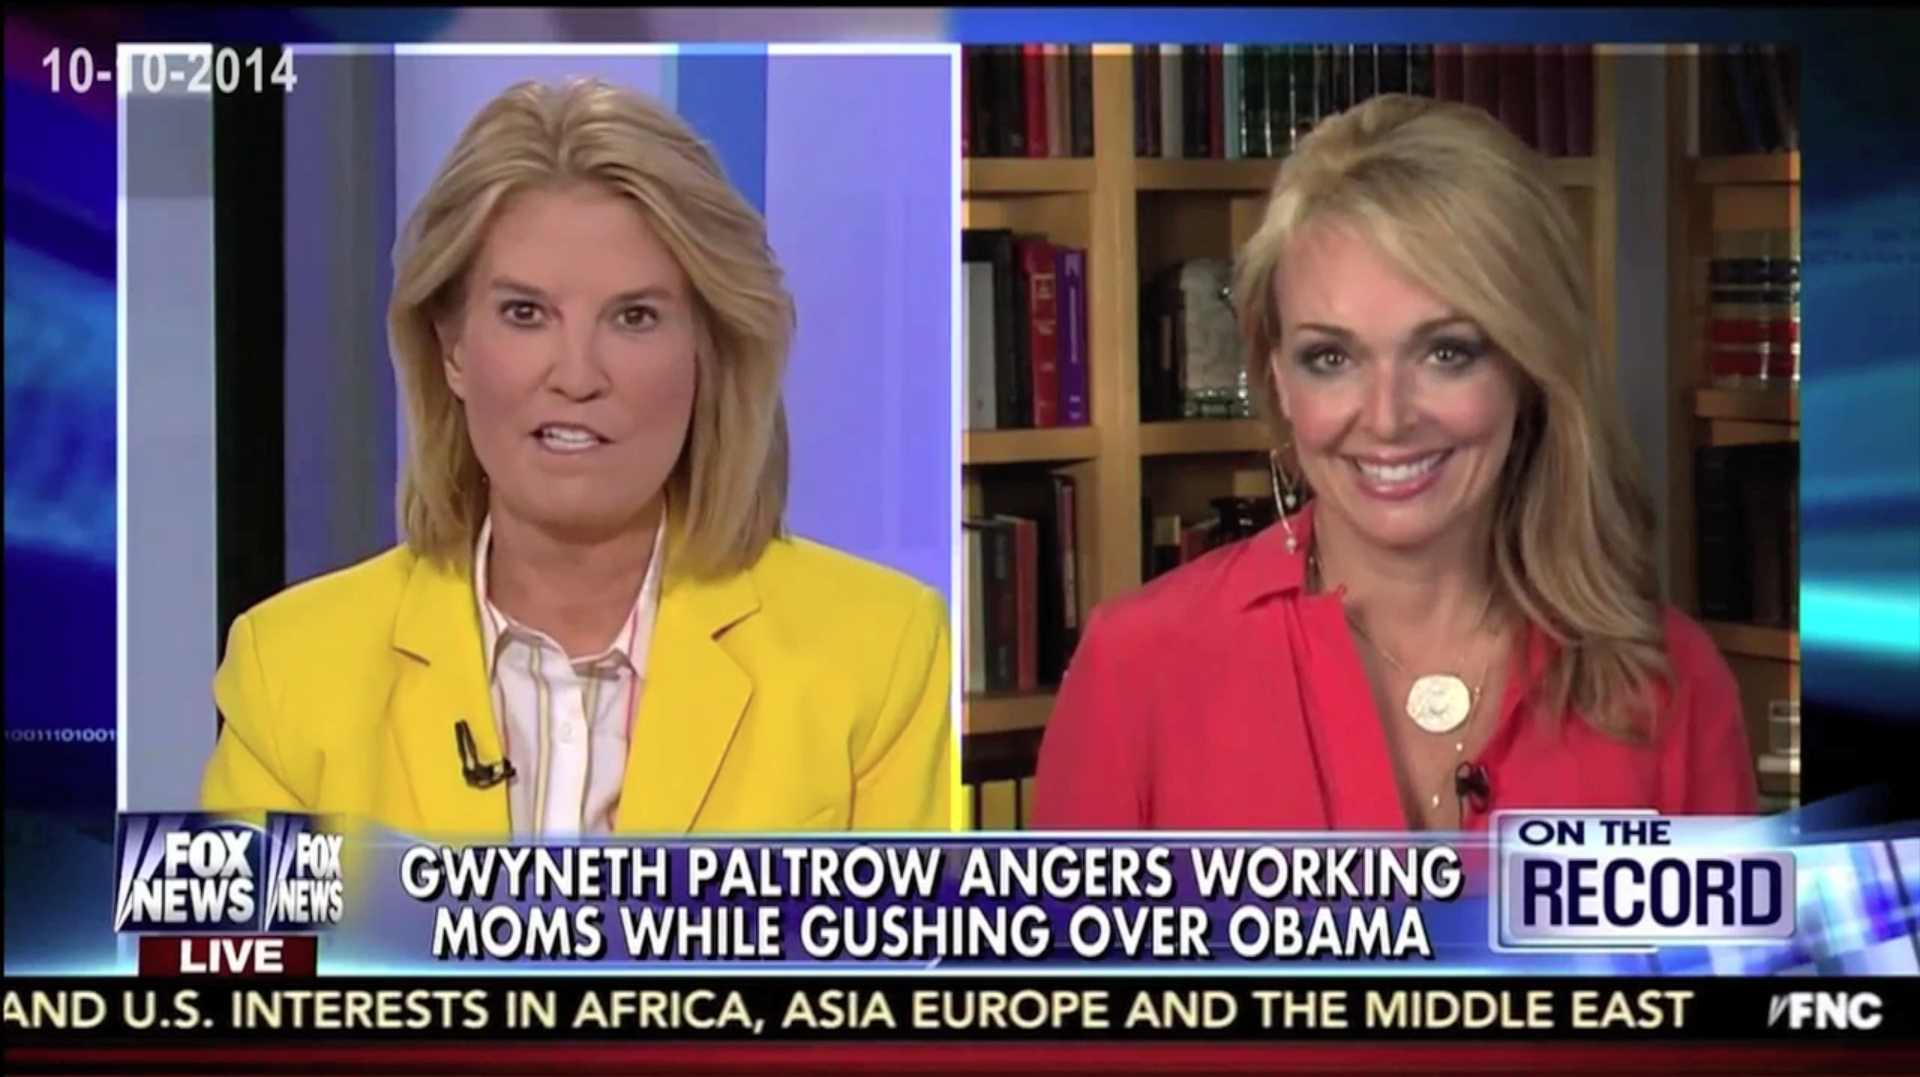 Photo of Dr. Gina & Greta Van Susteren on Gwyneth Paltrow's Love Affair with Obama